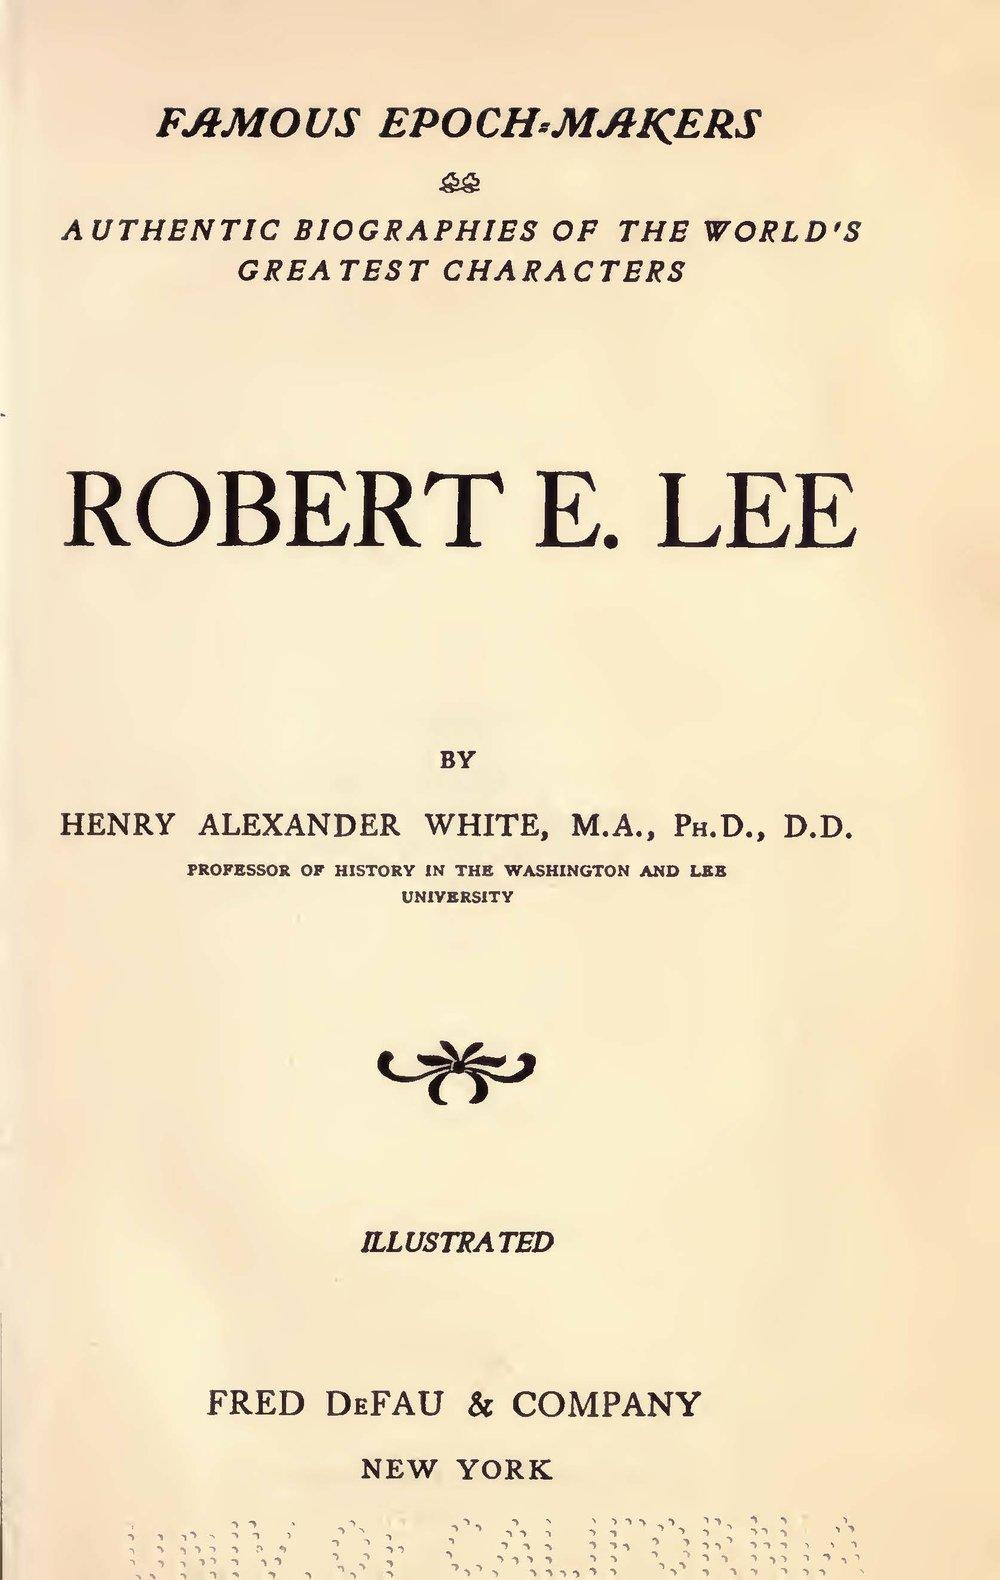 White, Henry Alexander, Robert E Lee Title Page.jpg